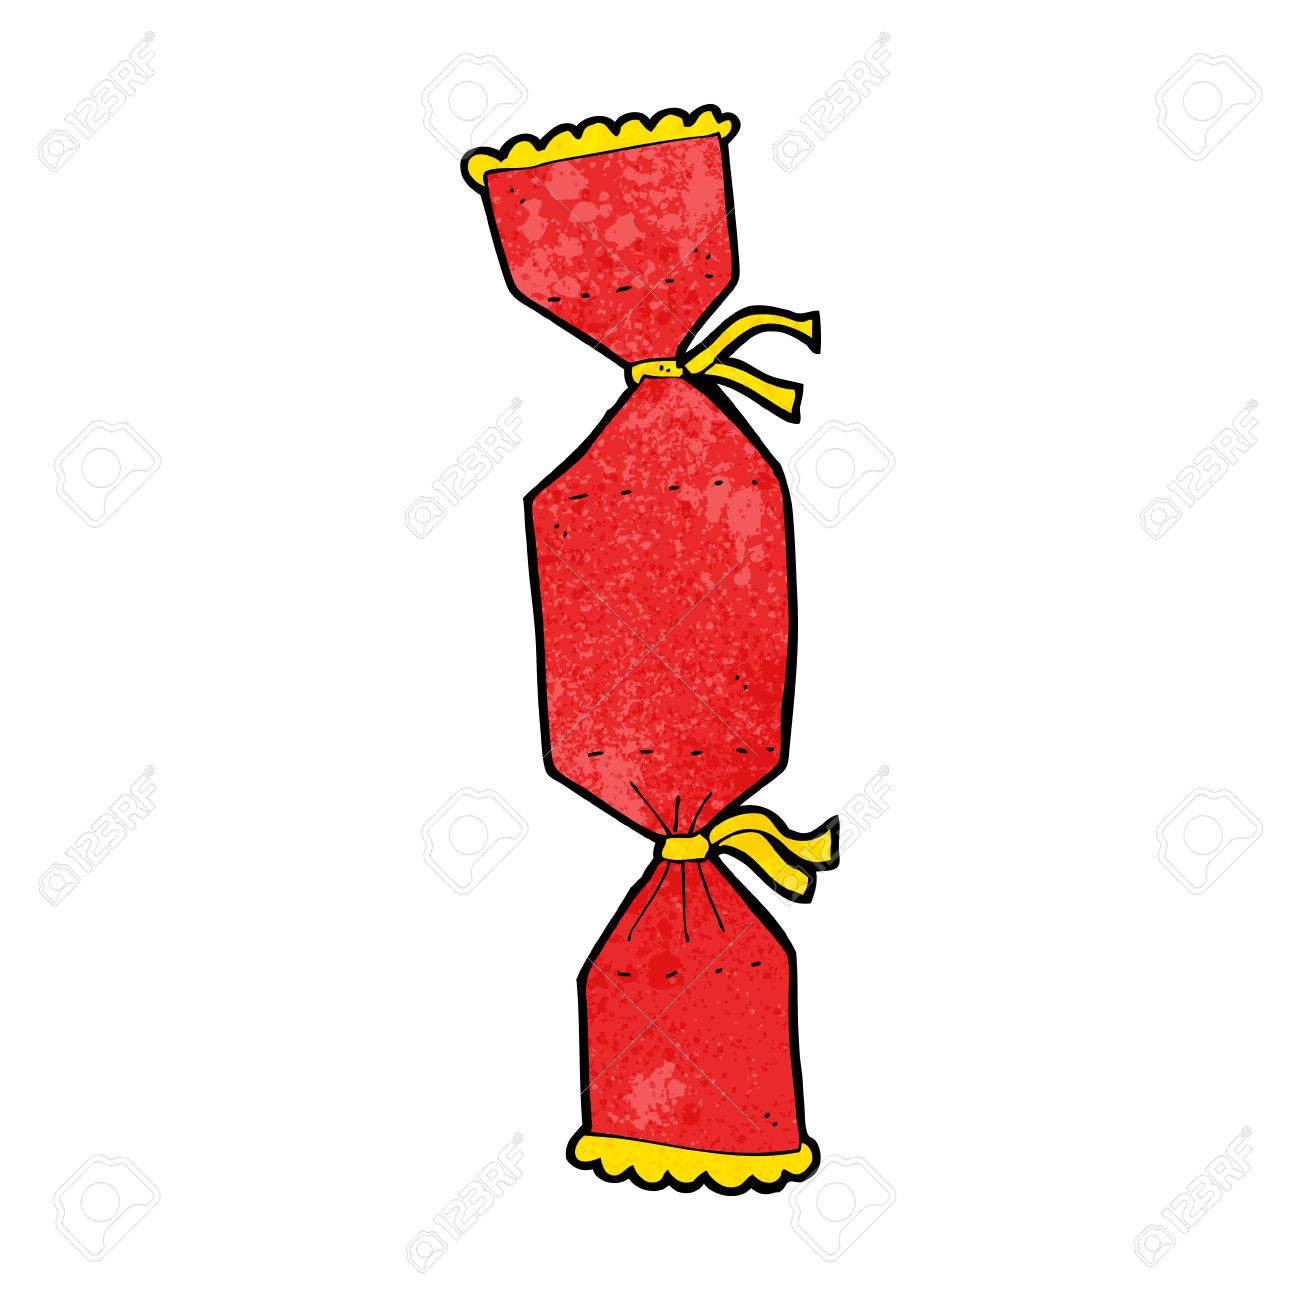 Christmas Crackers Cartoon.Crackers Cliparts Free Download Best Crackers Cliparts On